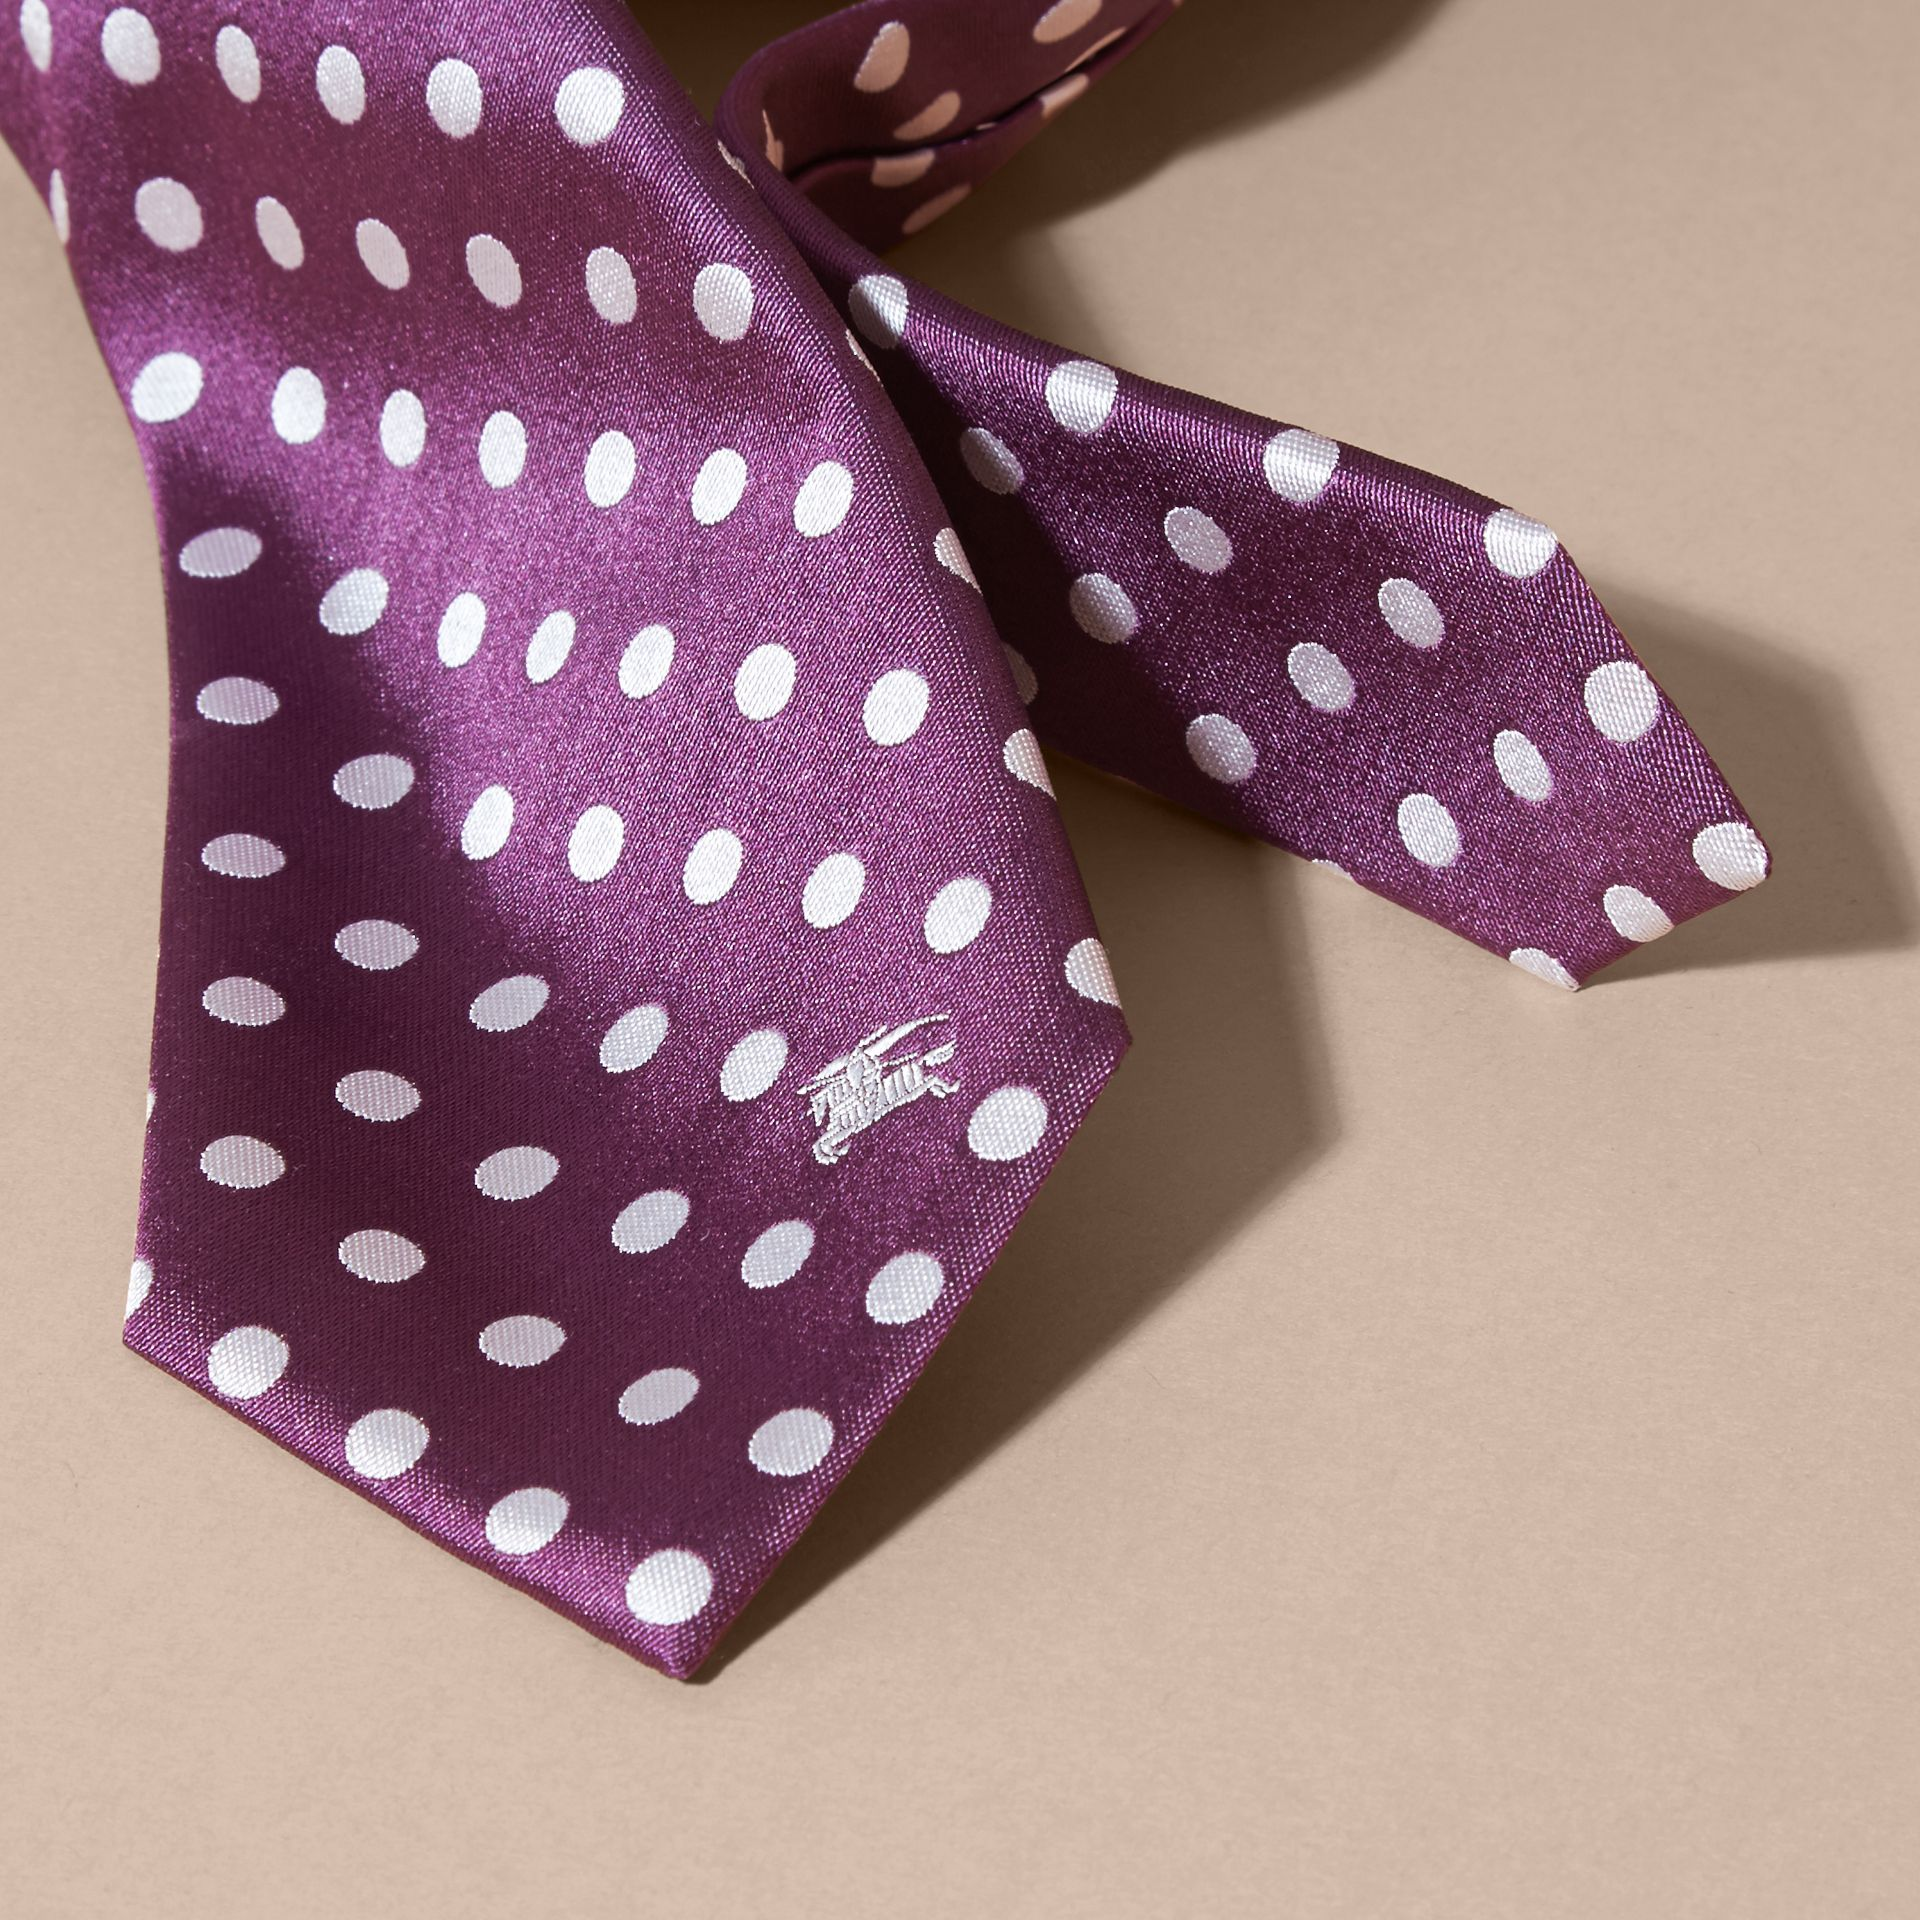 Modern Cut Polka-dot Silk Jacquard Tie in Purple Black - Men | Burberry - gallery image 2